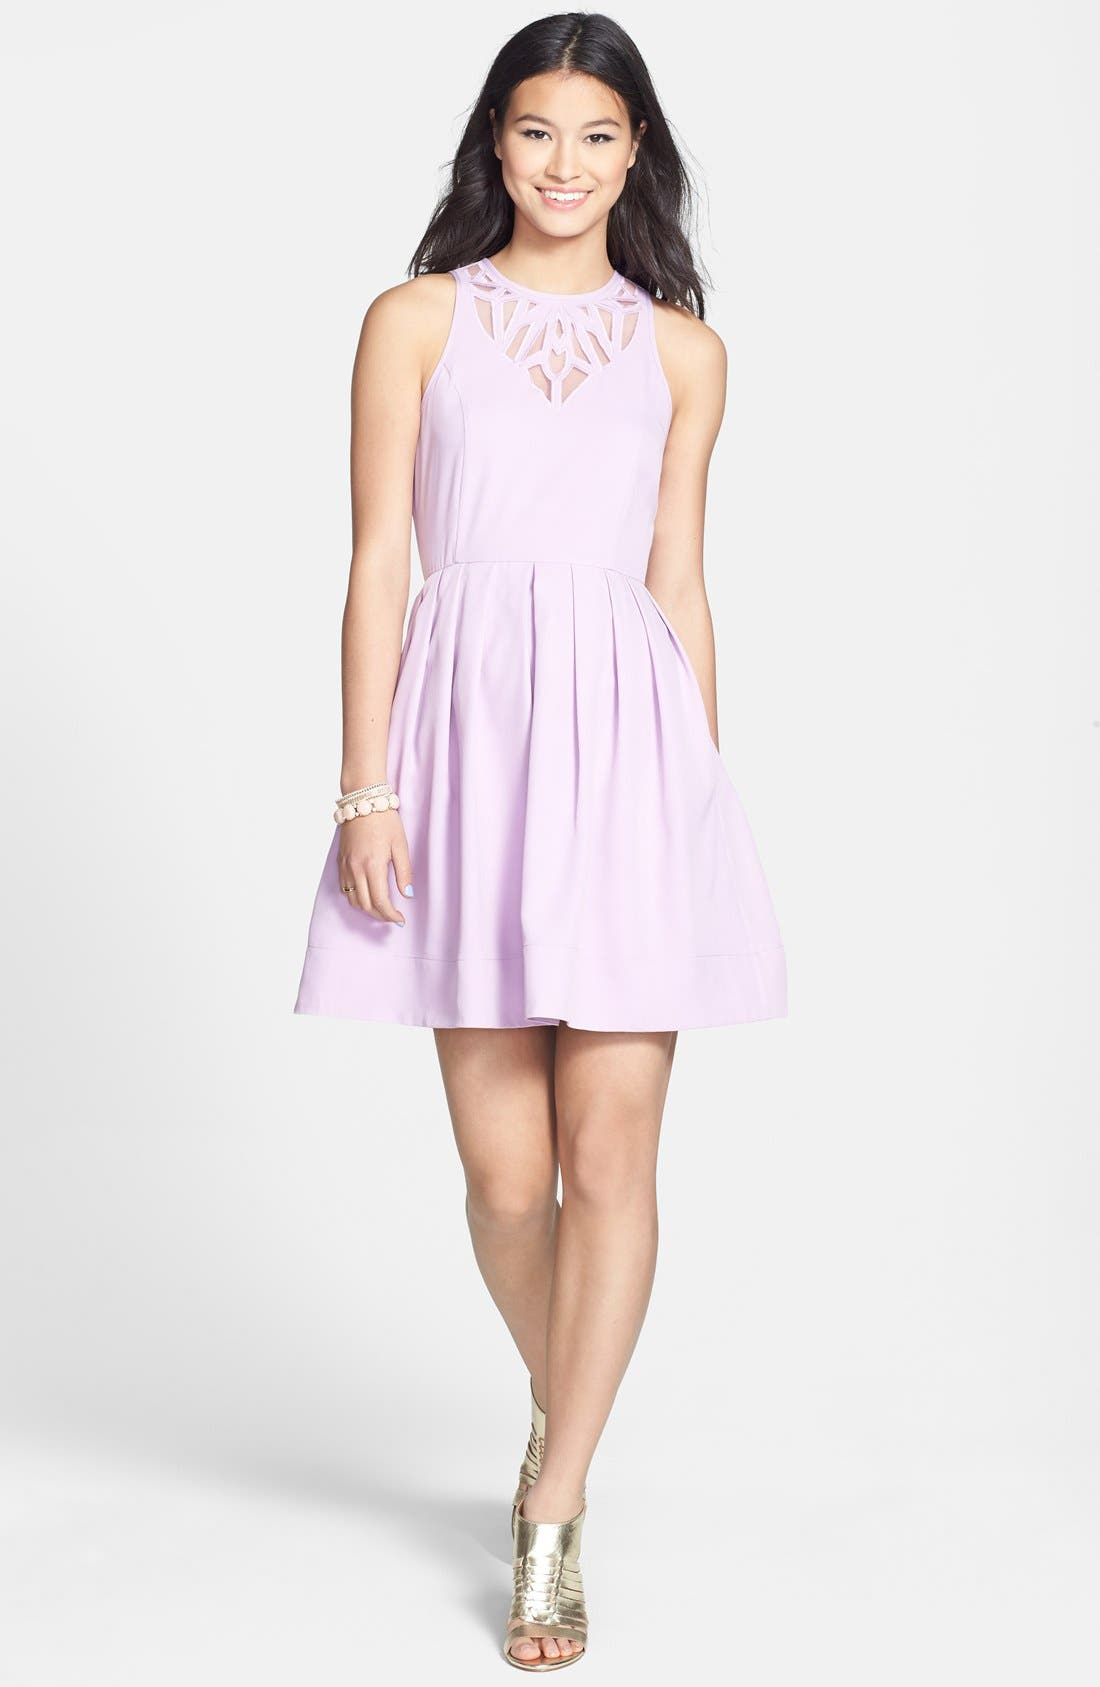 Alternate Image 1 Selected - Everly Mesh Yoke Fit & Flare Dress (Juniors) (Online Only)